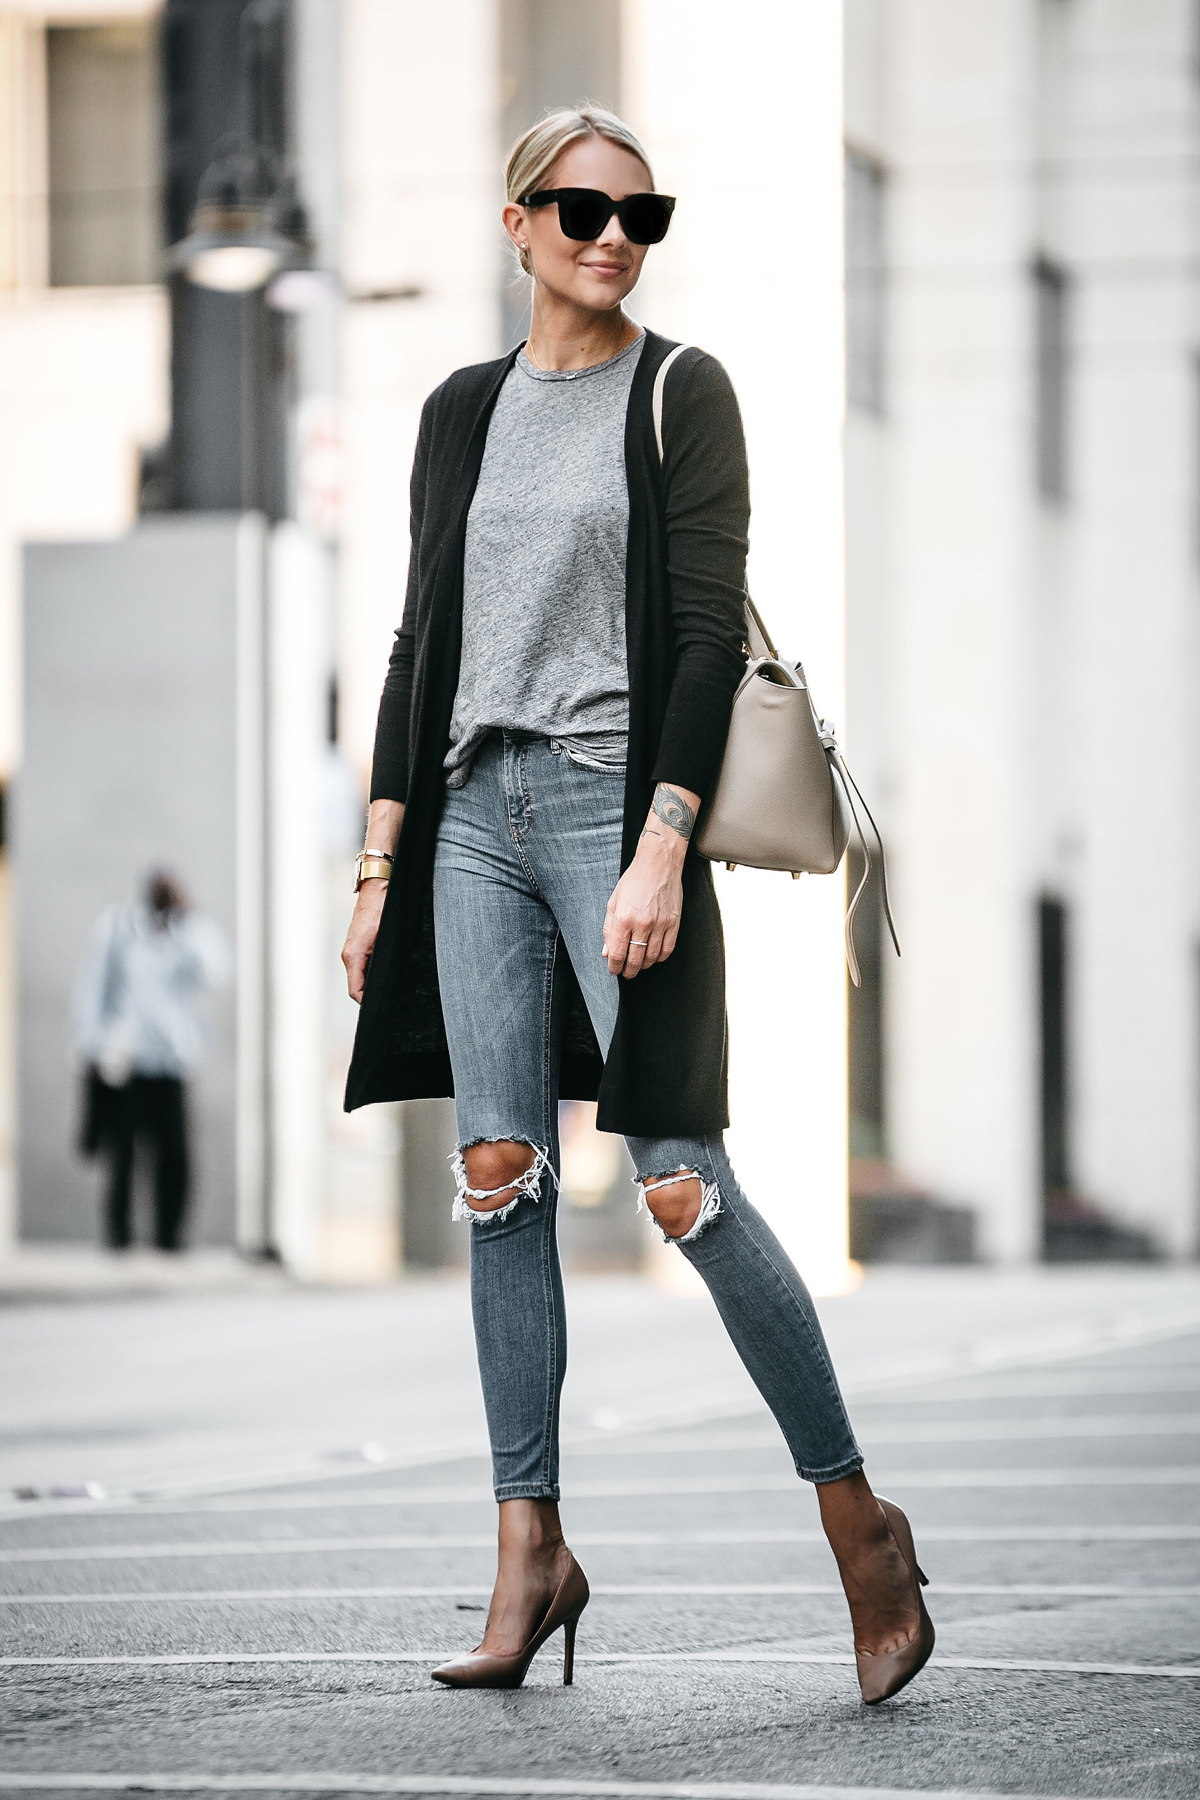 HOW TO STYLE A LONG CARDIGAN THIS FALL | Fashion Jackson